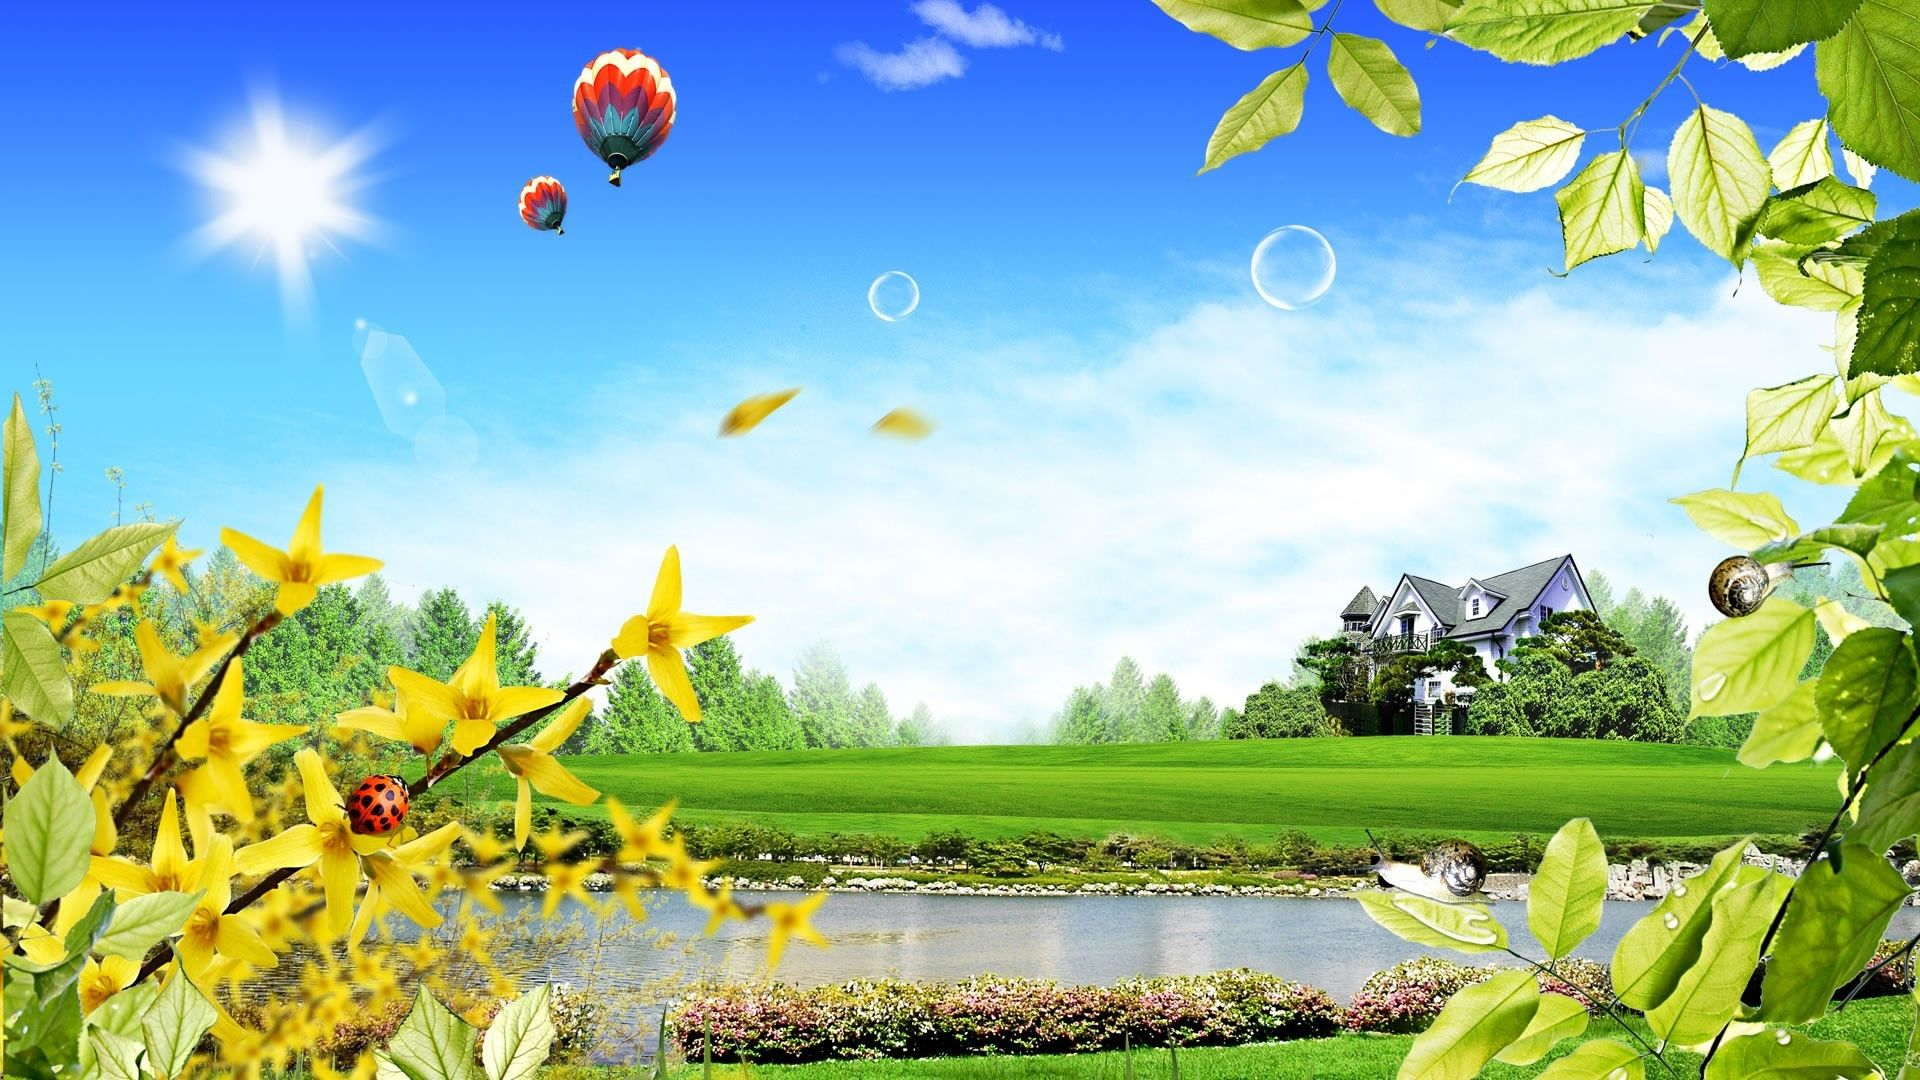 3d Nature Wallpaper 1366x768 Hd Widescreen 11 Hd Wallpapers